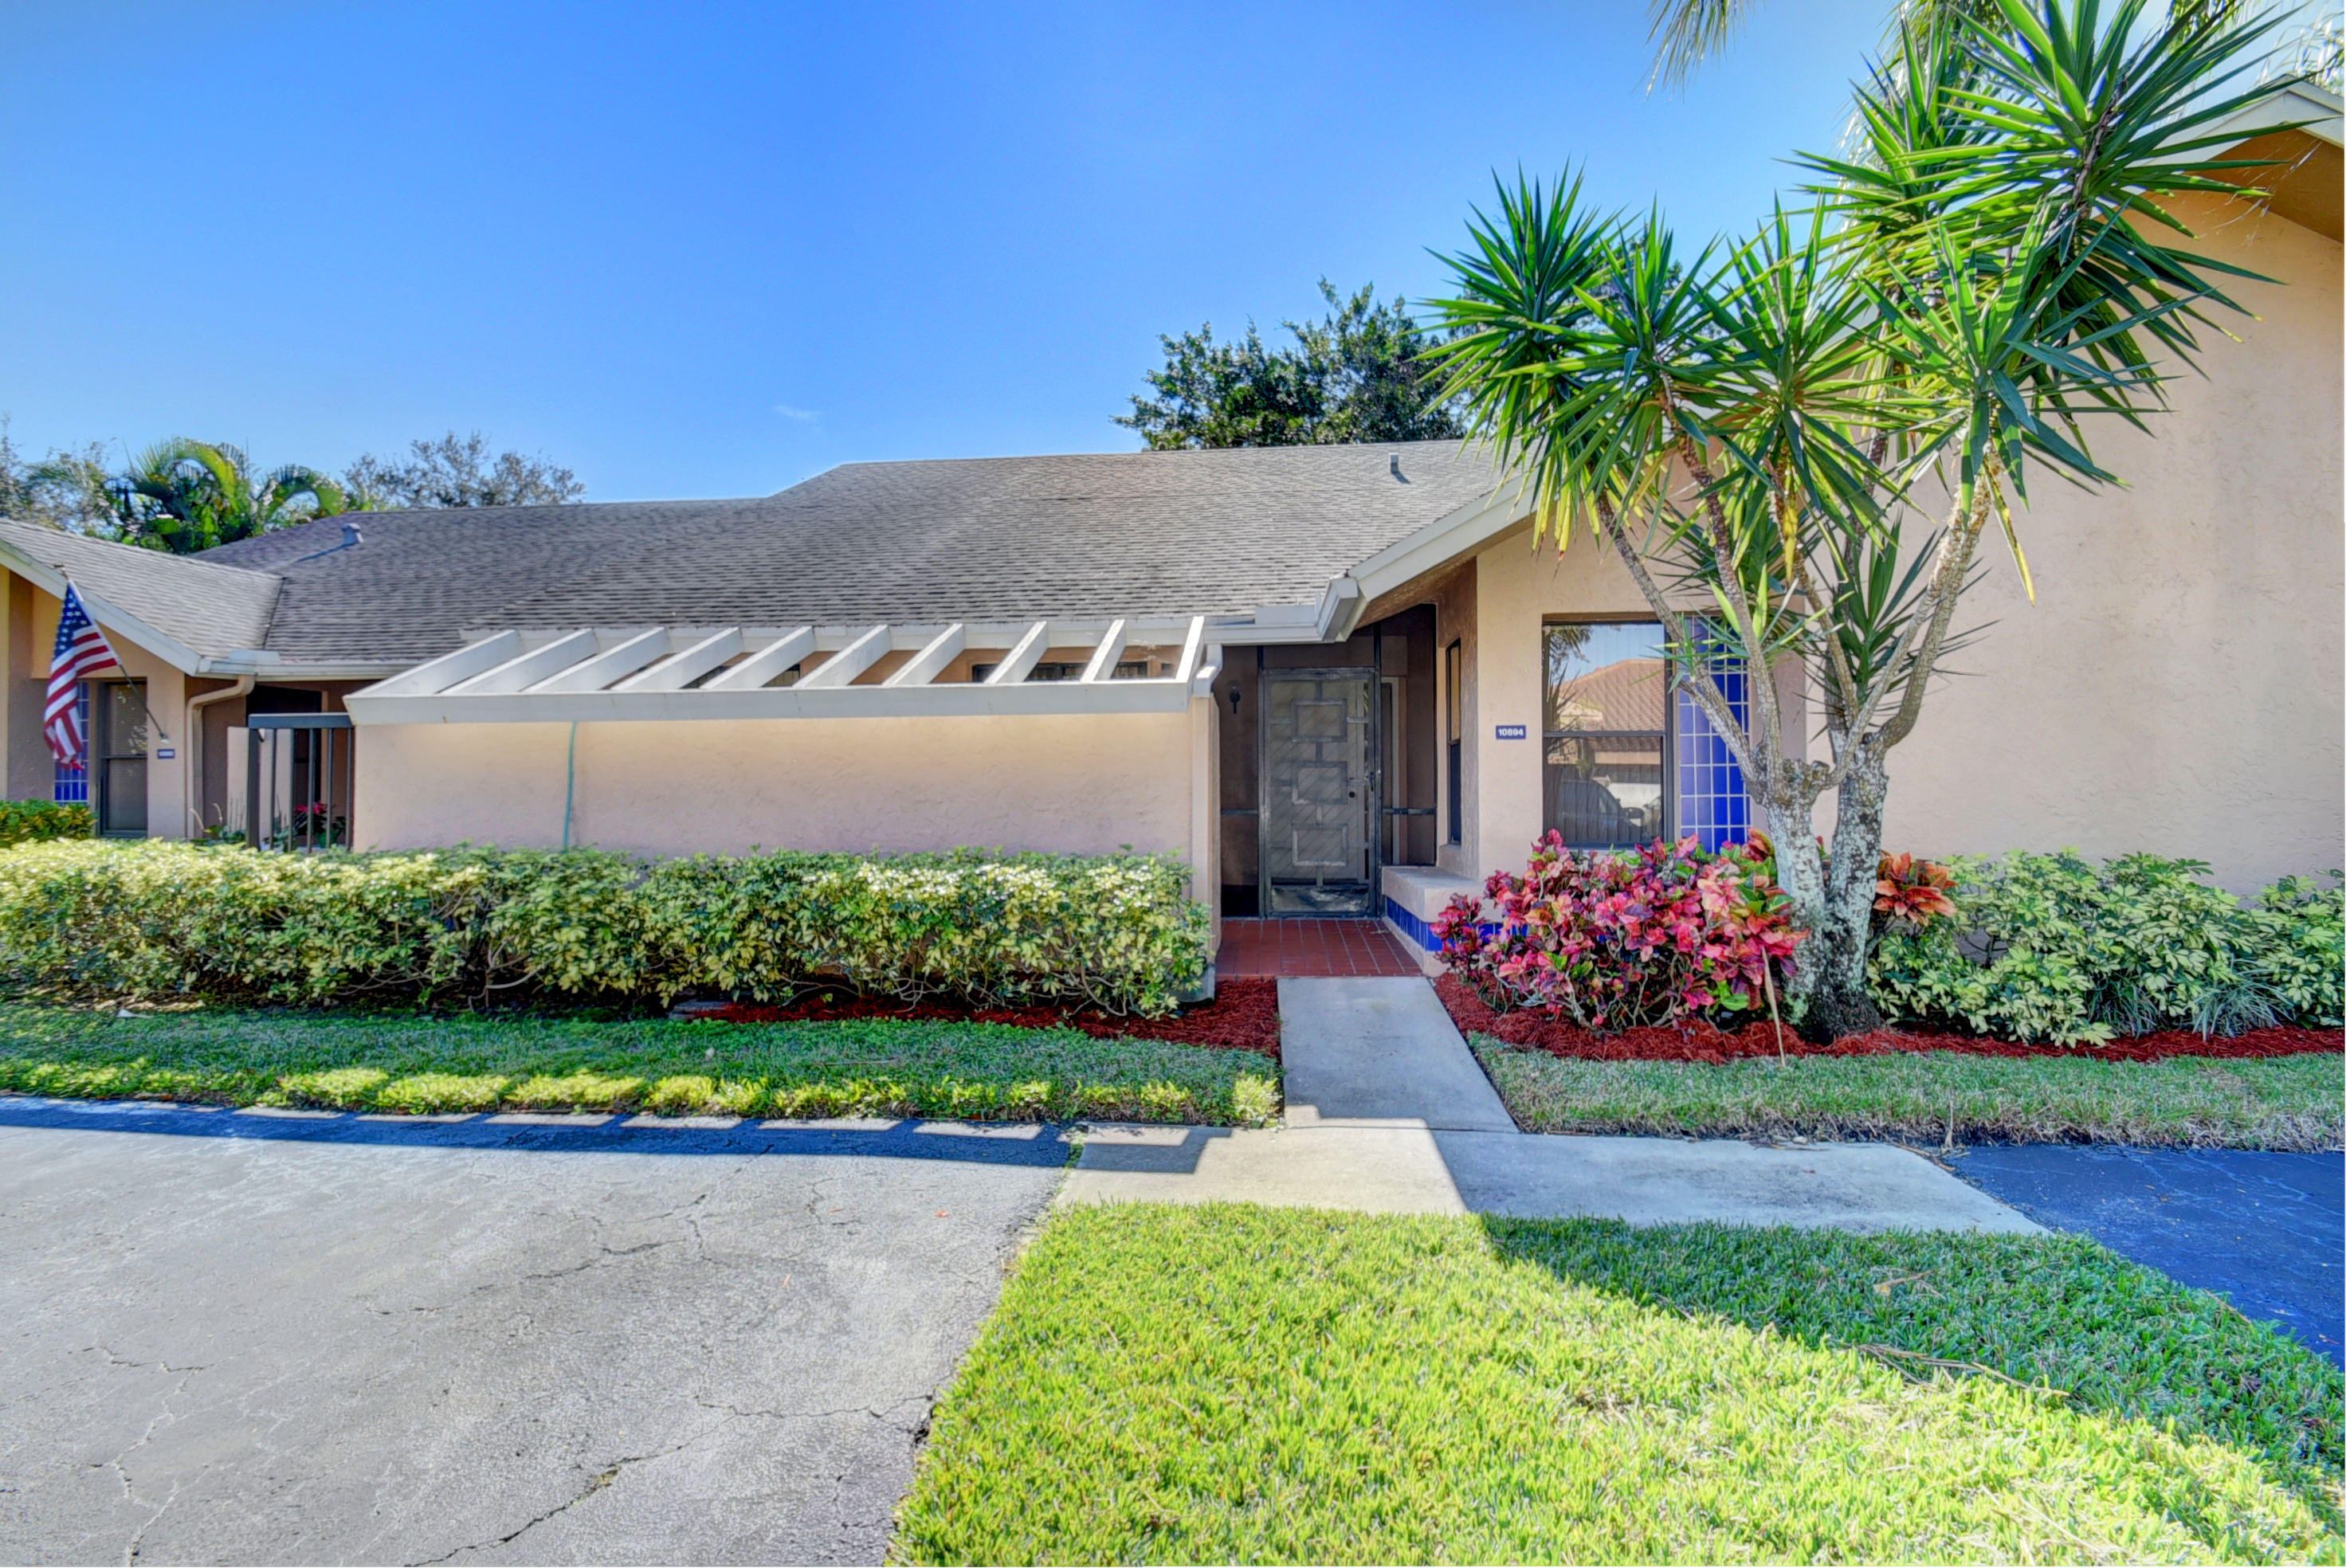 This incredibly pristine villa on a cul-de-sac features an eat-in-kitchen w/spacious breakfast area, large living room/dining room, & FLORIDA ROOM WITH A/C. The 14x13 master bedroom suite offers a large walk-in closet & master bath. There is a 12x11 2nd bedroom & bath, & interior laundry room. The charming Florida Room features impact glass doors with a view of gorgeous greenery. A/C - 2015. Roof - 2006. Atlas appliance contract.  Vaulted ceilings, lovely front patio, & 2 car parking right in front. Exterior painted in 2016. Active clubhouse, pool, tennis, sauna, fitness room, BBQ area, pier. Assoc says 55+ community. 2 pets welcome up to 20 lbs each. HOA covers exterior paint, lawn, cable, clubhouse, gate. Lovely West Boca area. Available unfurnished, furnished (negotiable), or turnkey.